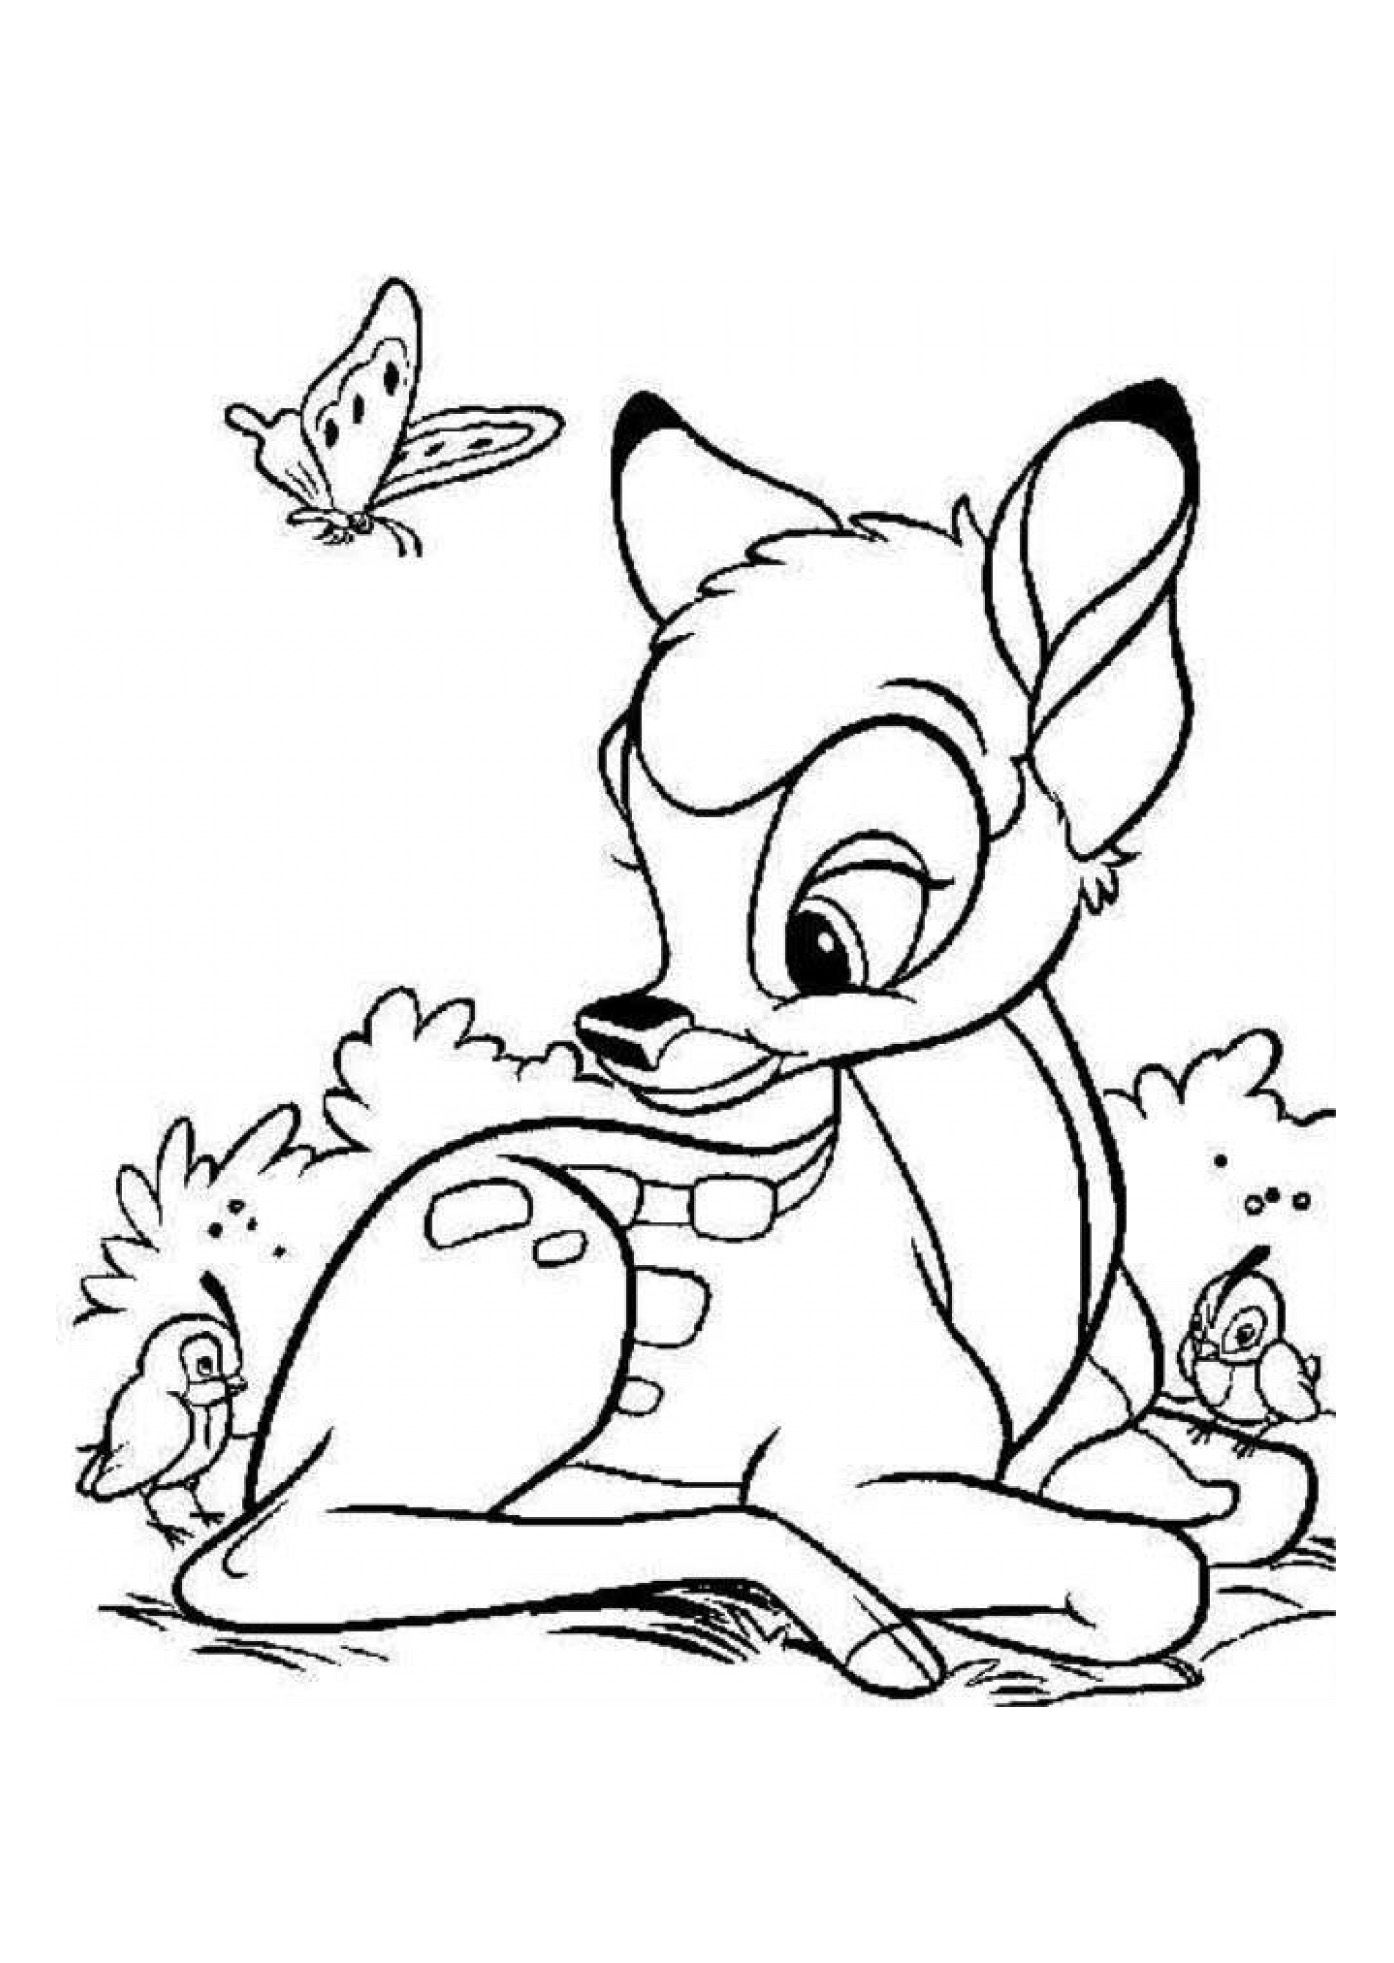 Bambi Coloring Pages Pdf : Coloriage bambi disney jpg dans coloring pages